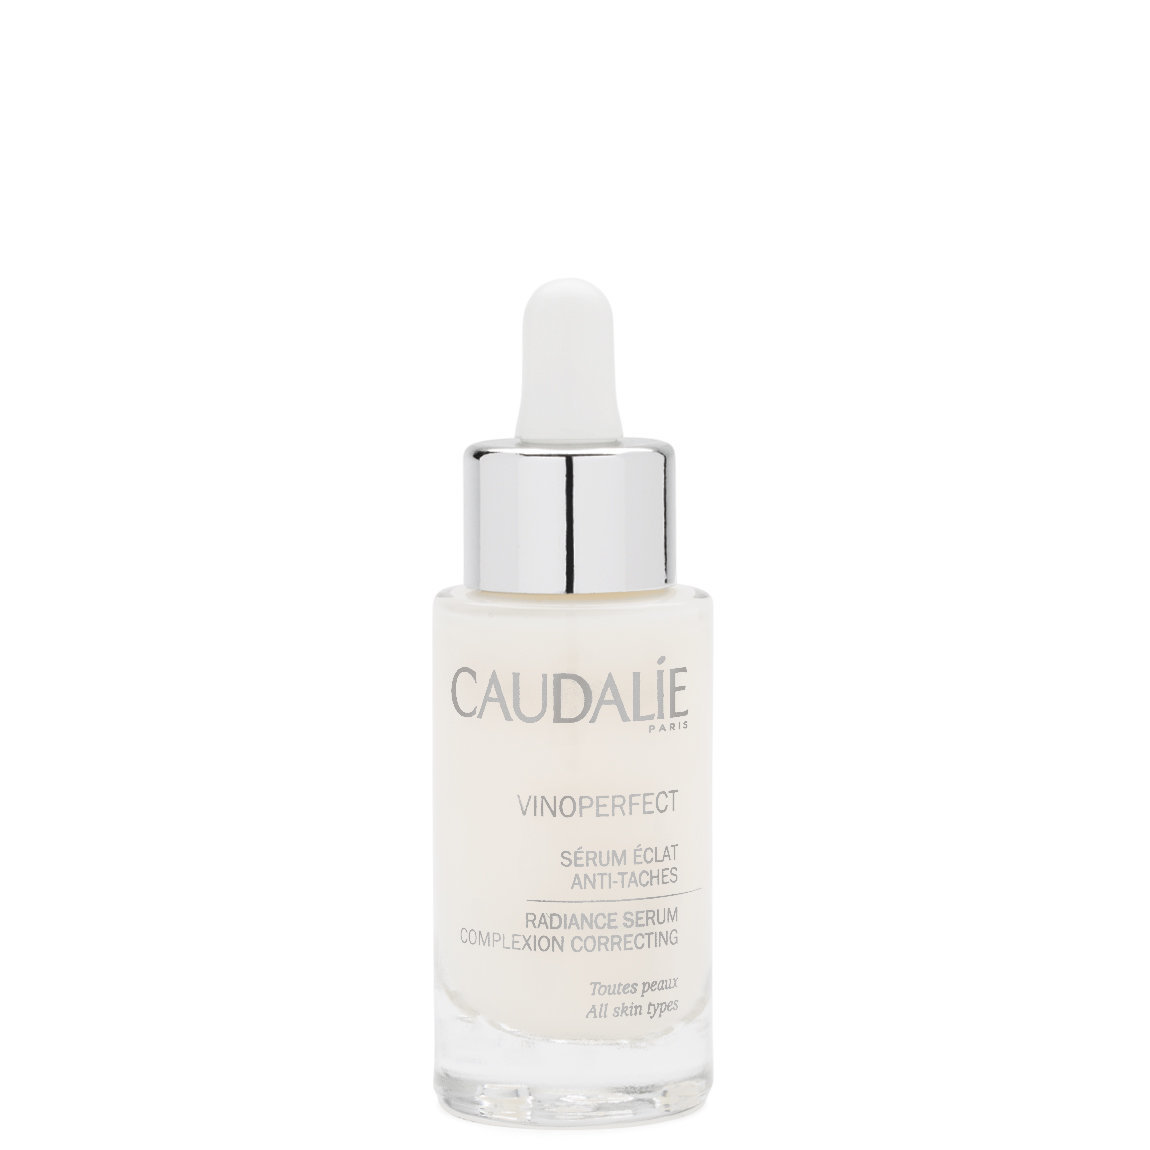 Caudalie Vinoperfect Radiance Serum product swatch.